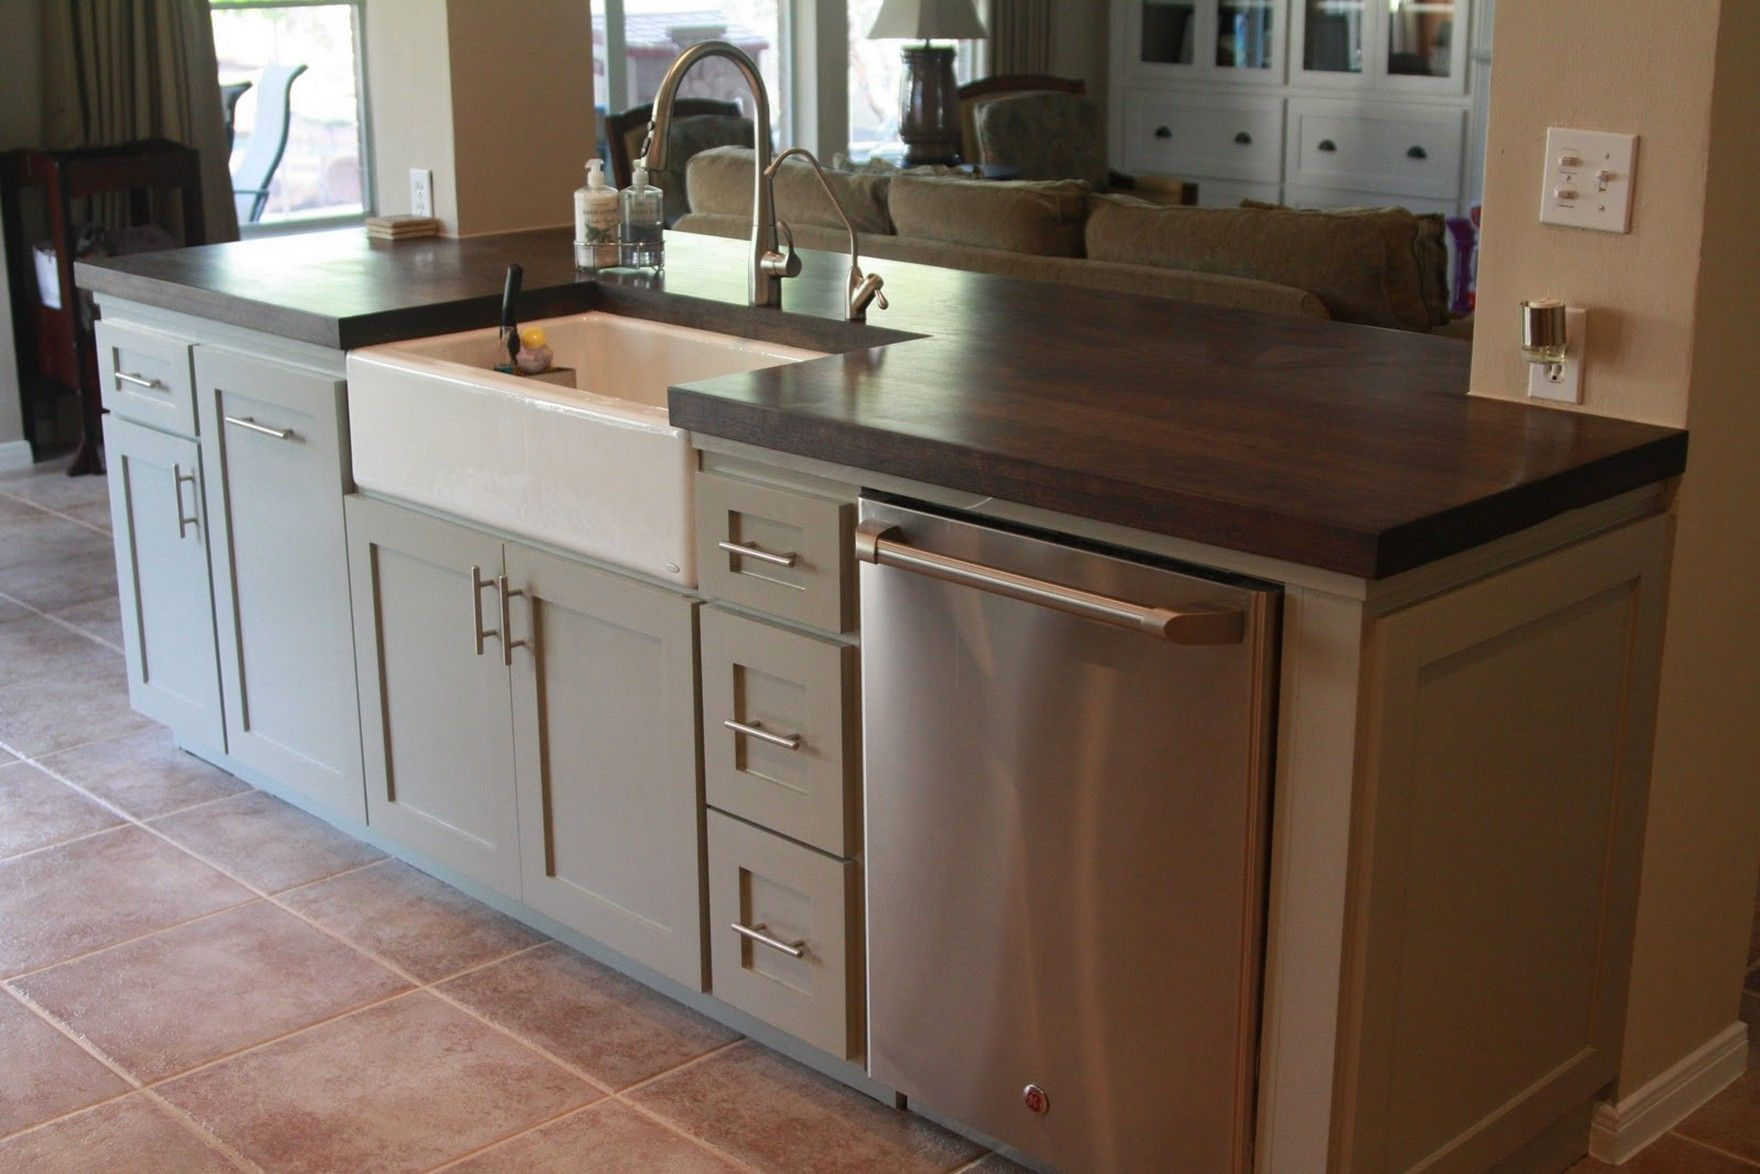 Kitchen Sink Dishwasher 3 Kitchen Islands With Seating Sink And